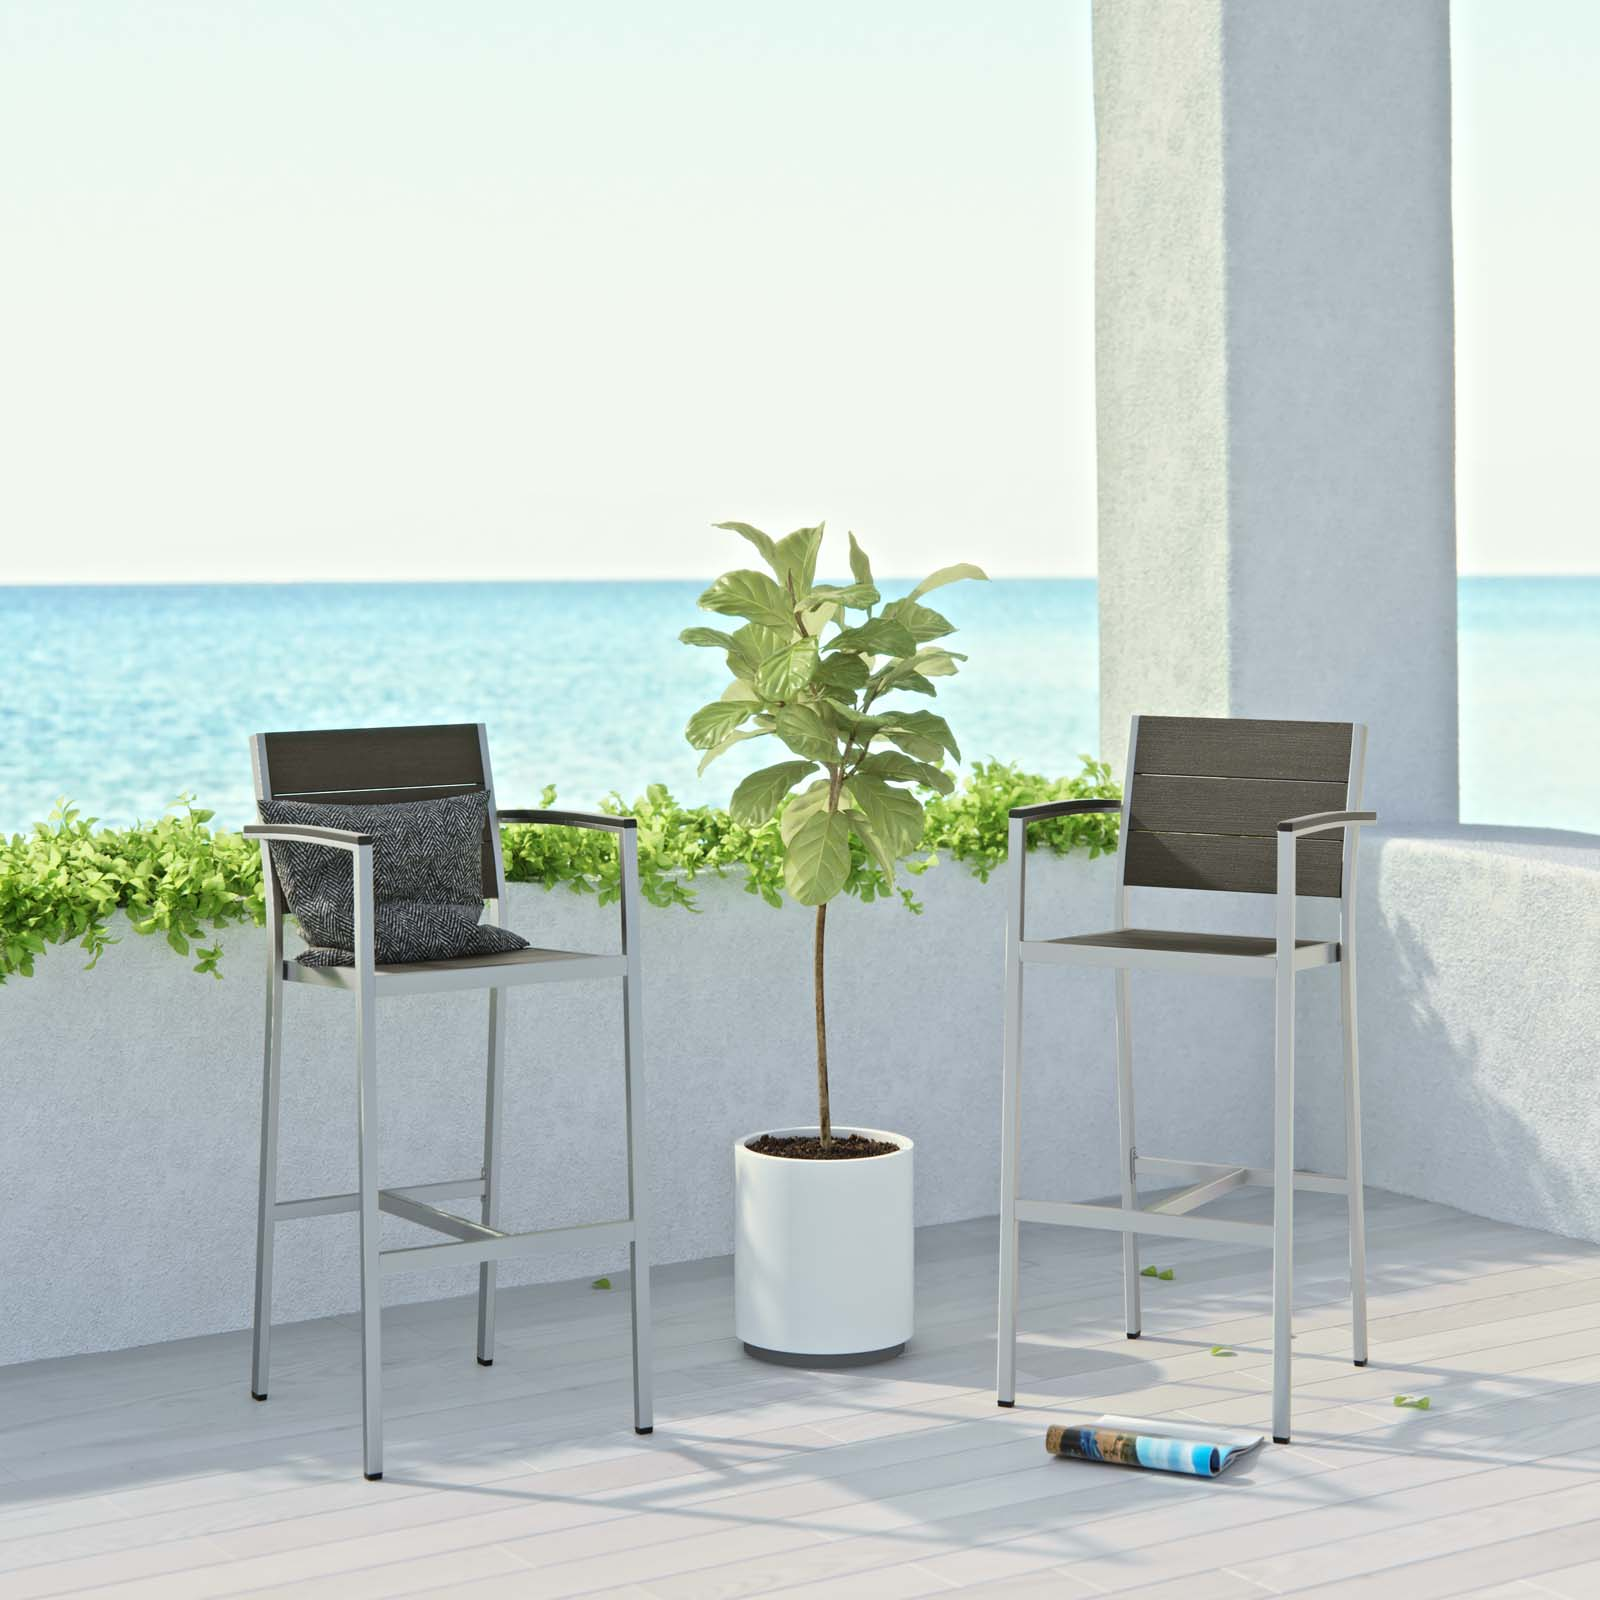 Modway Shore Outdoor Patio Aluminum Bar Stool Set of 2 in Silver Gray